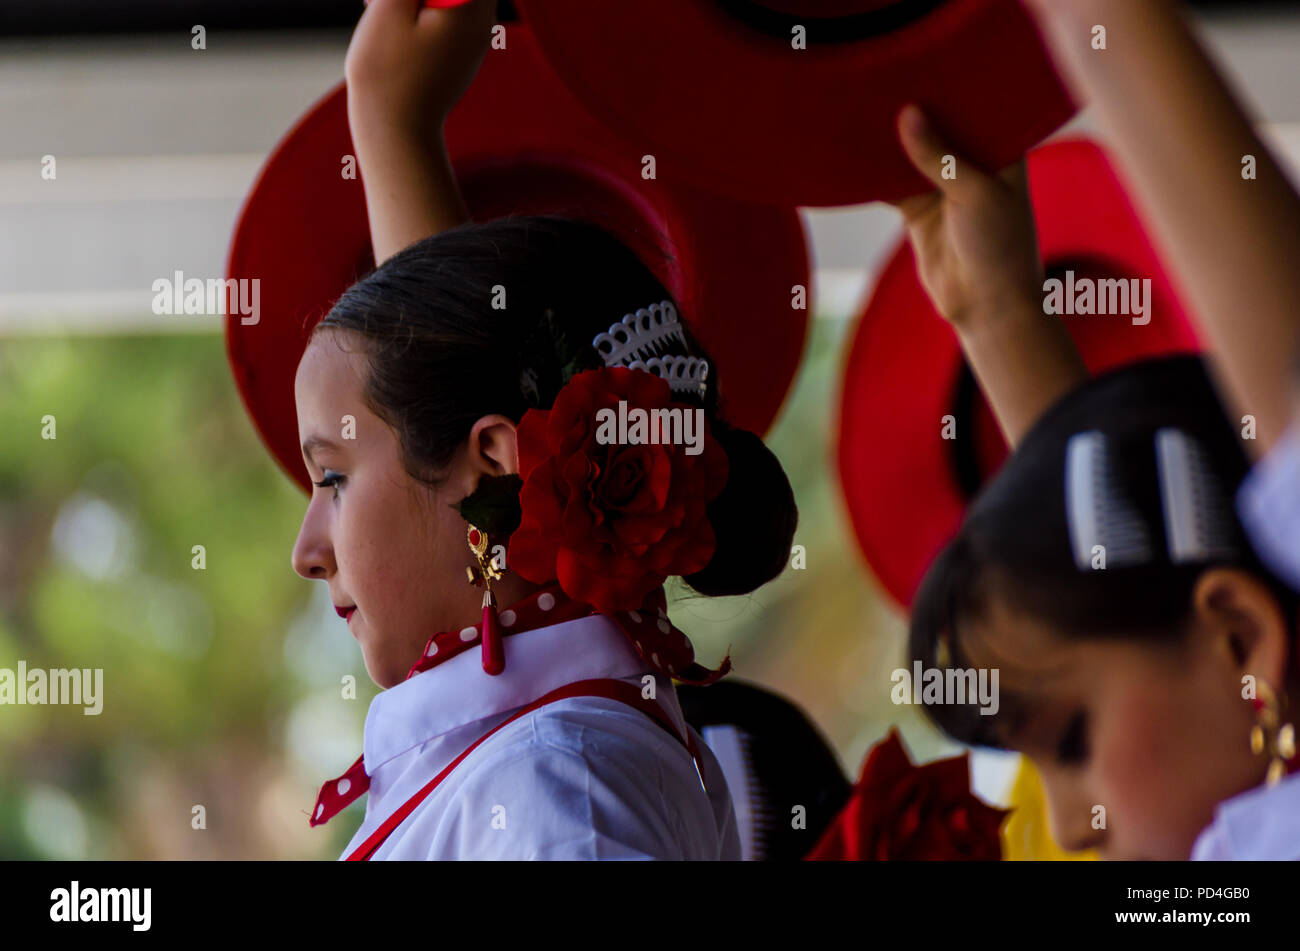 TORRE DEL MAR, SPAIN - JULY 22, 2018 show of Latin dance performed by a dance group in the rhythm of Spanish music, children in folk costumes performi - Stock Image